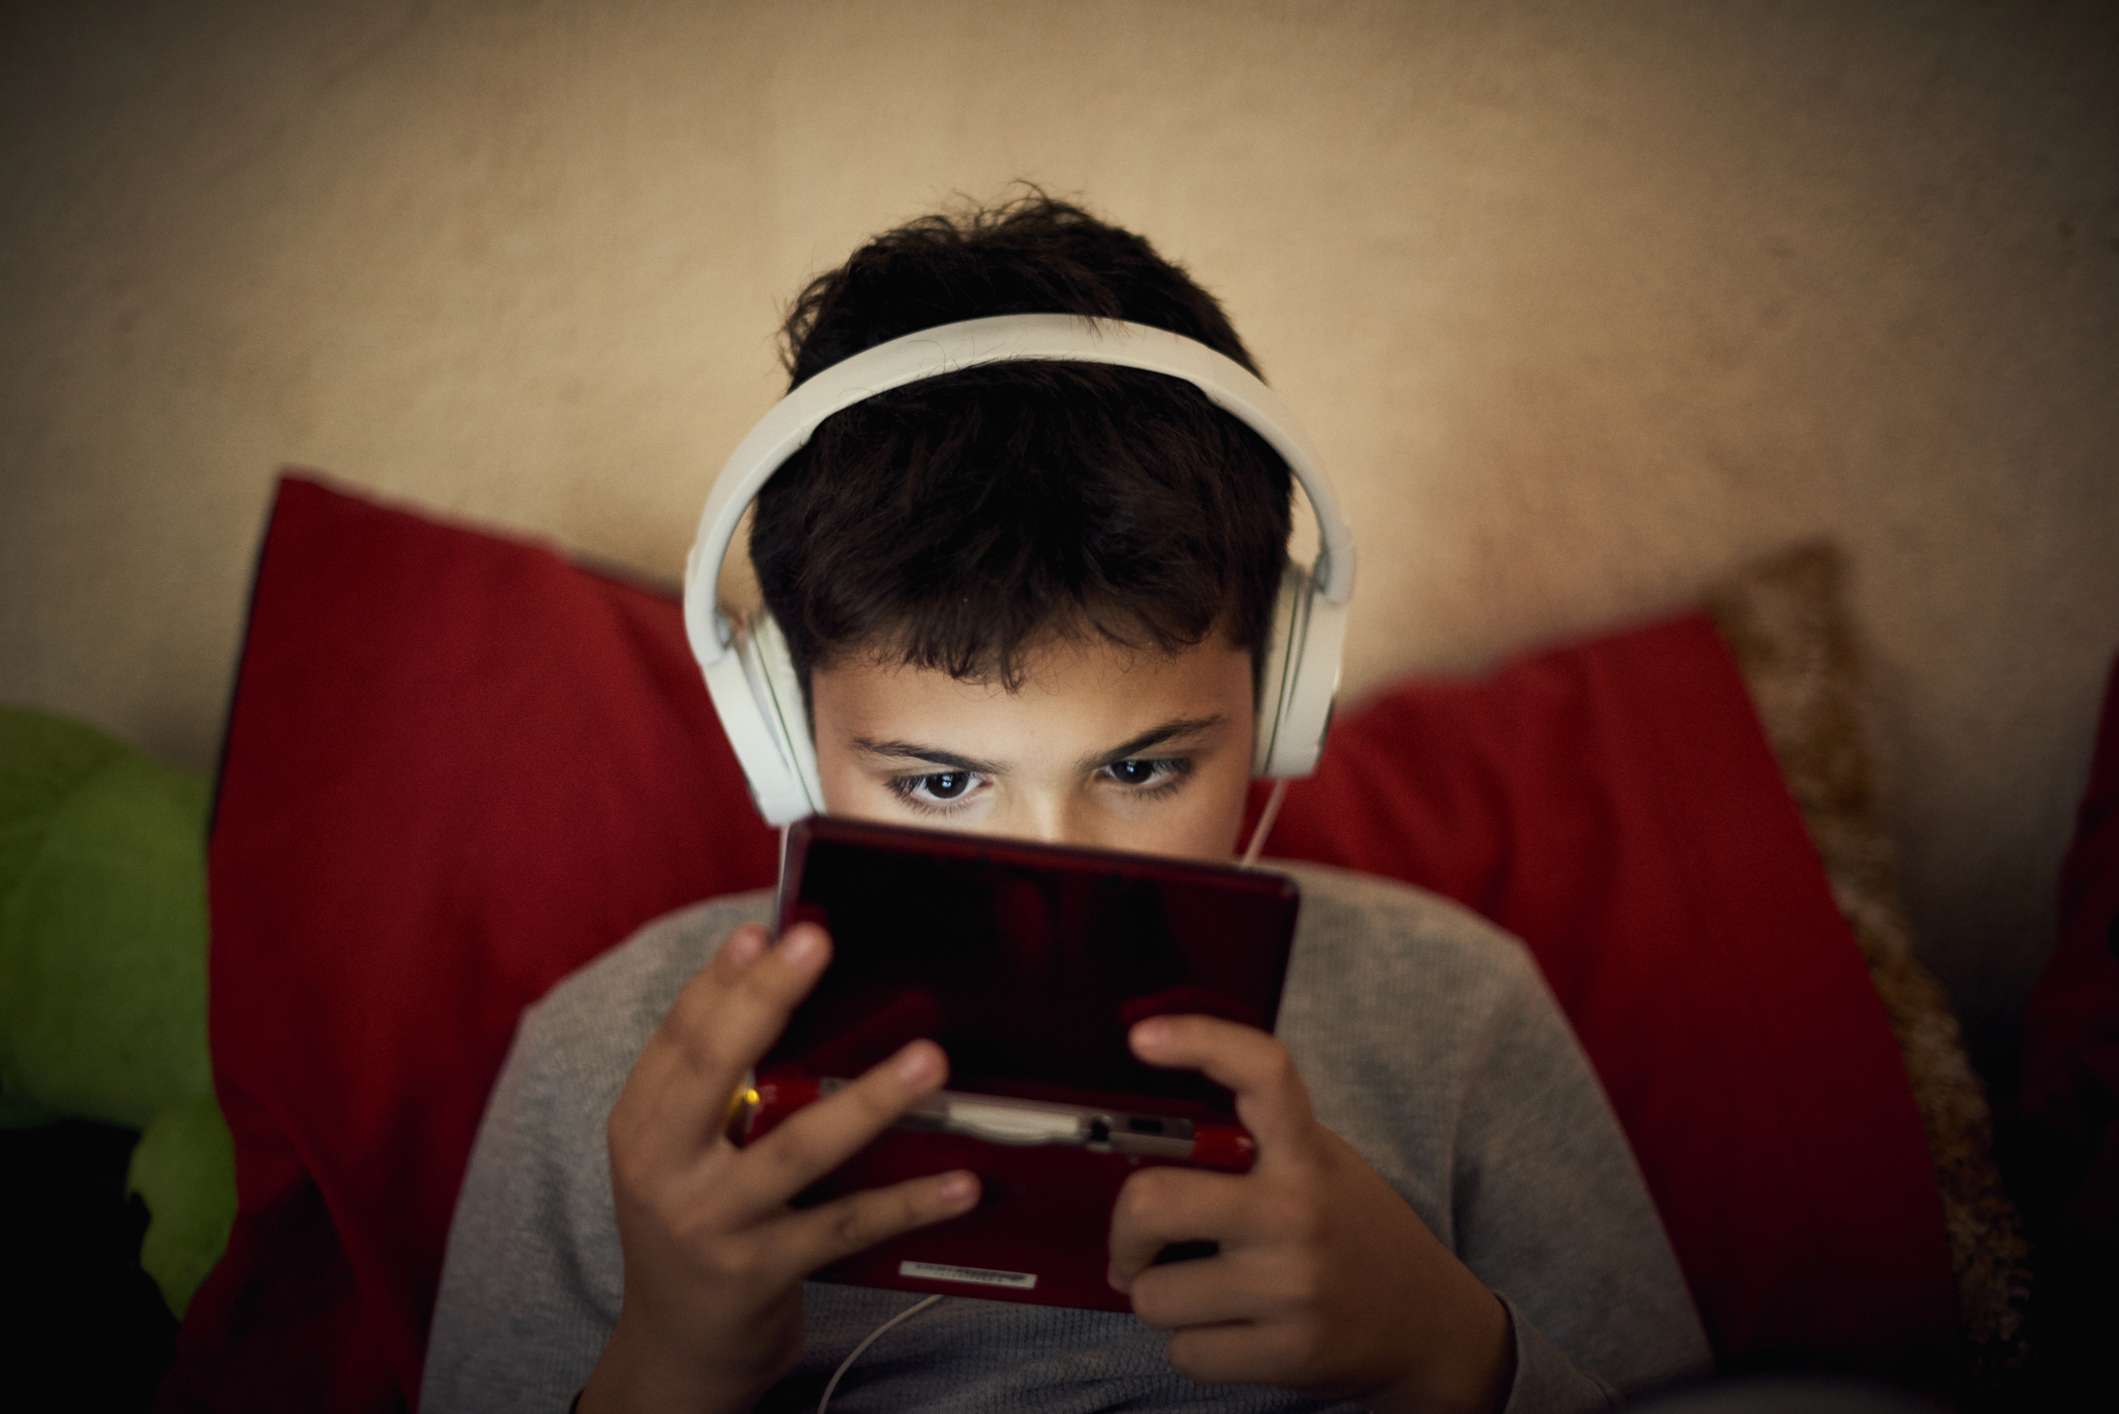 A child playing on a hand-held gaming system.